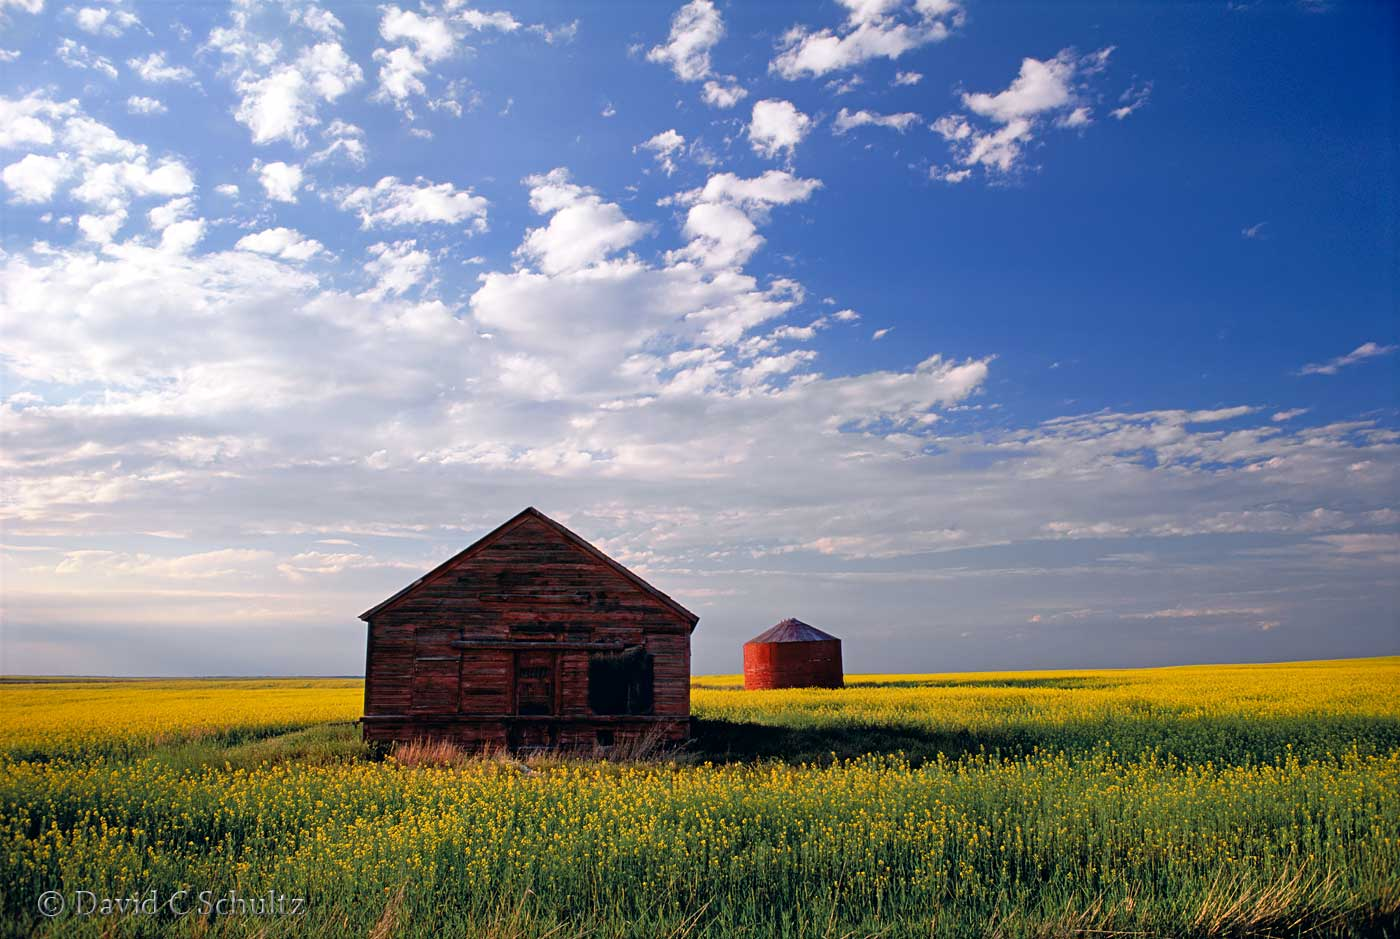 cCanola field in bloom in Alberta, Canada - Image #7-1245